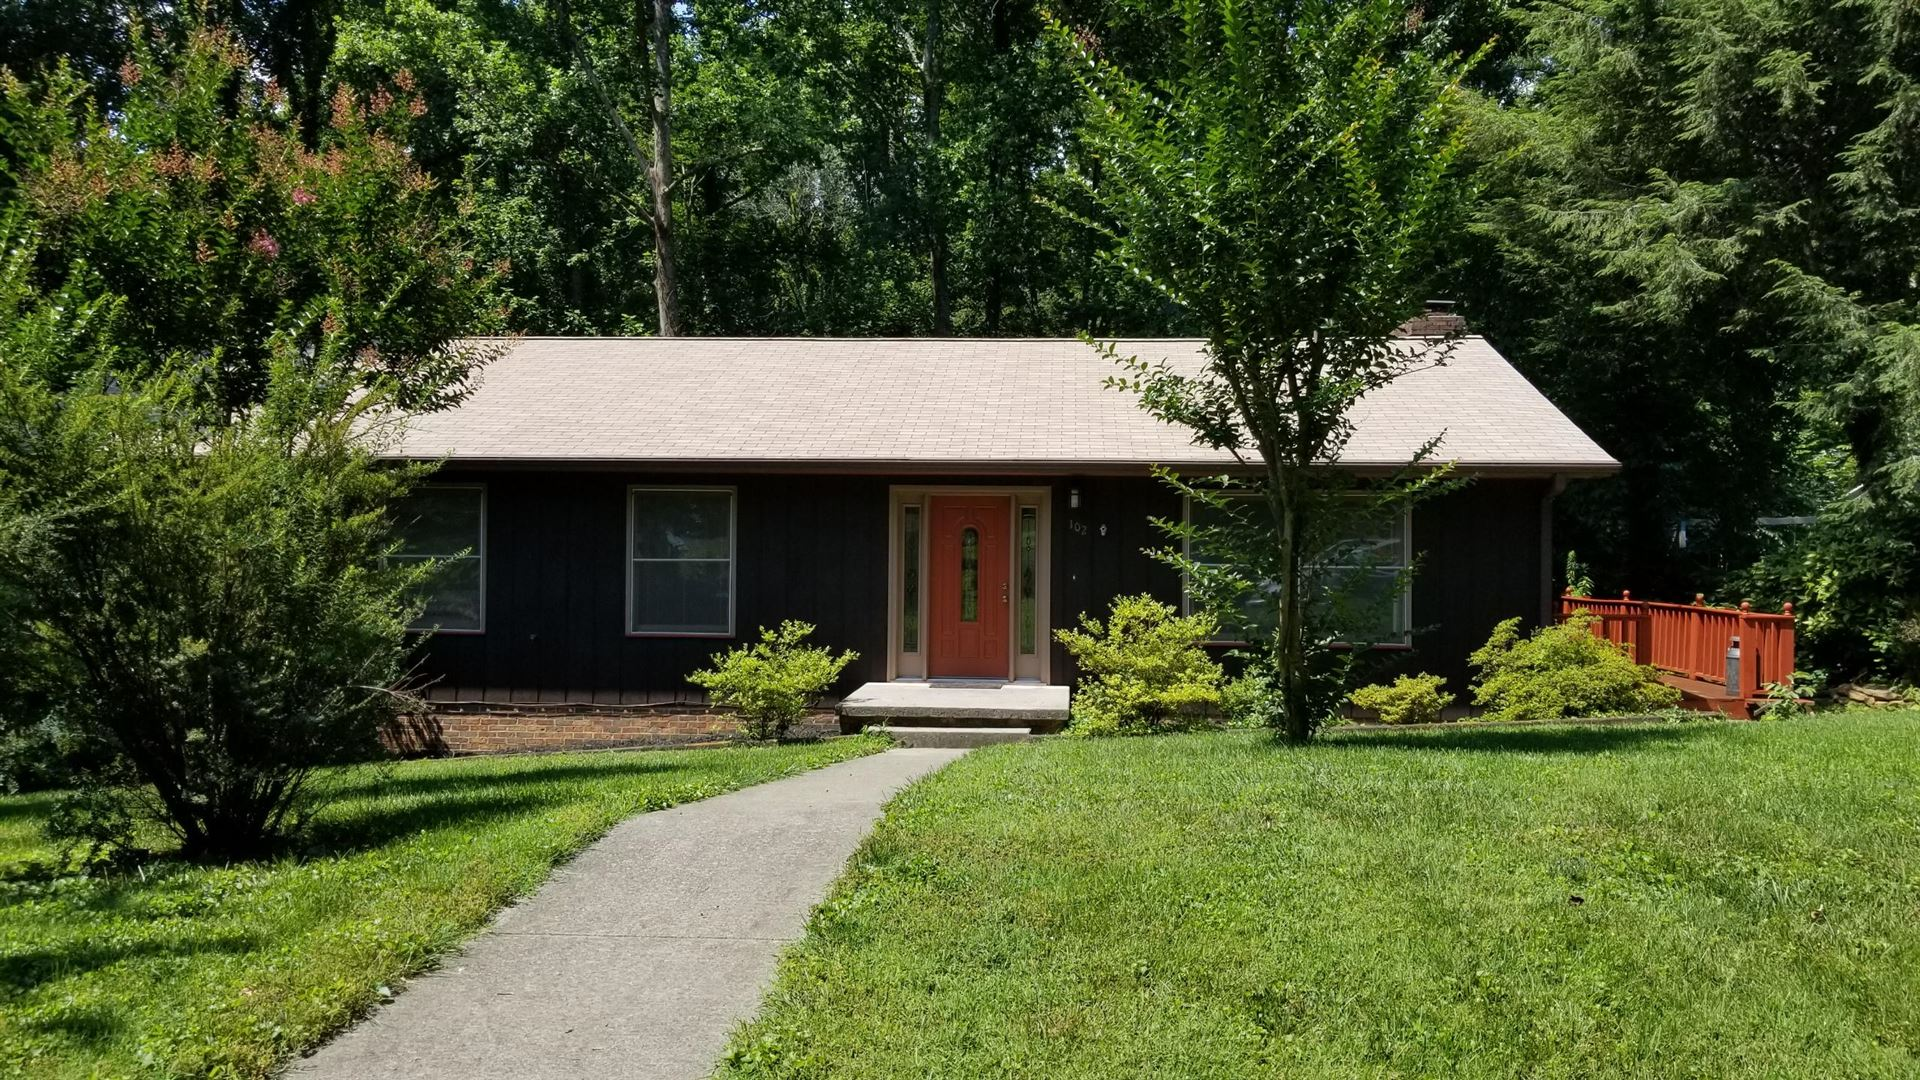 Photo of 102 Windgate Rd, Oak Ridge, TN 37830 (MLS # 1122032)